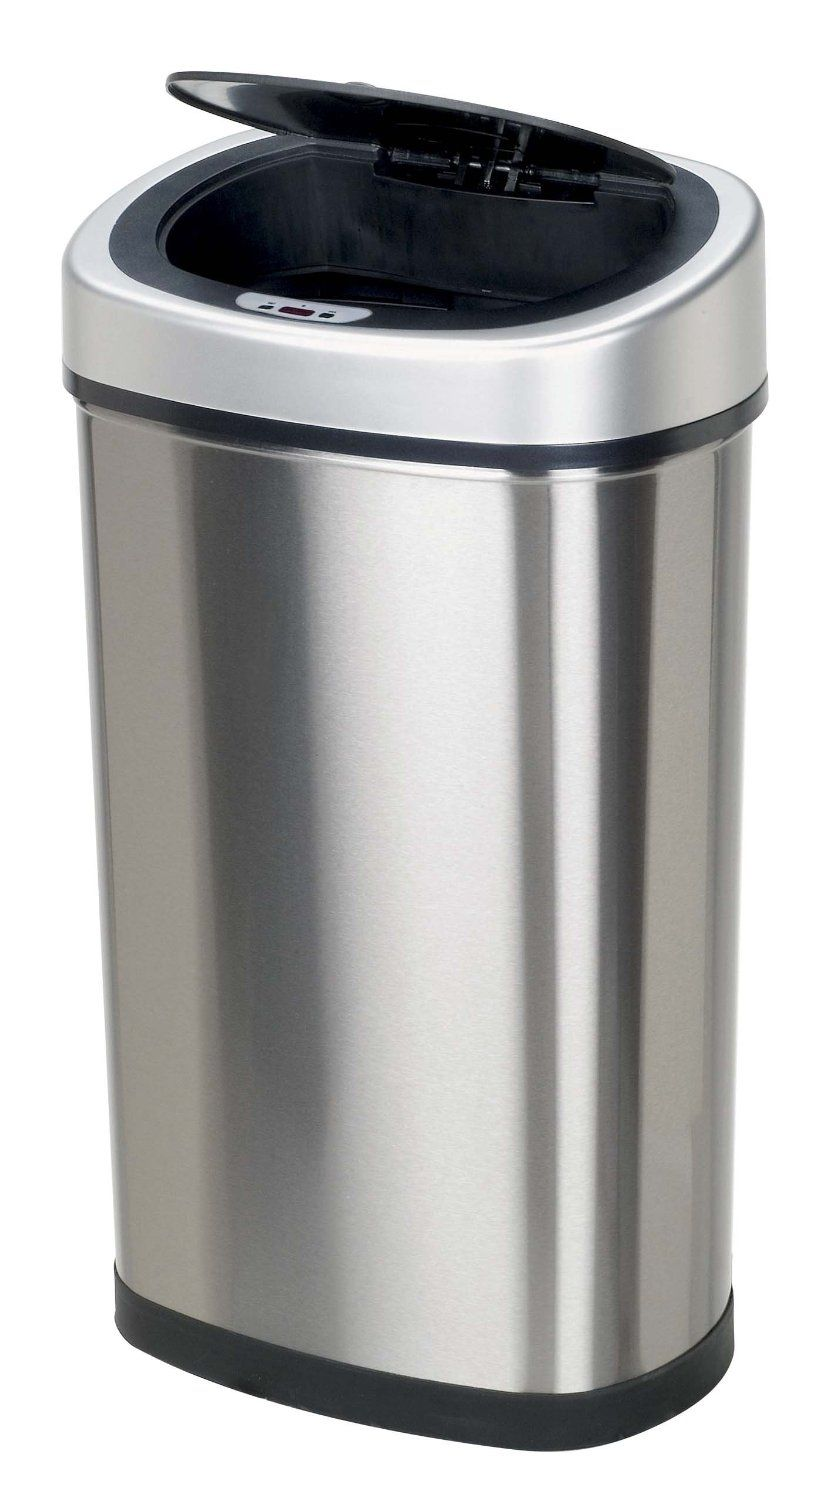 Nine Stars Dzt 50 9 Touchless Stainless Steel 13 2 Gallon Trash